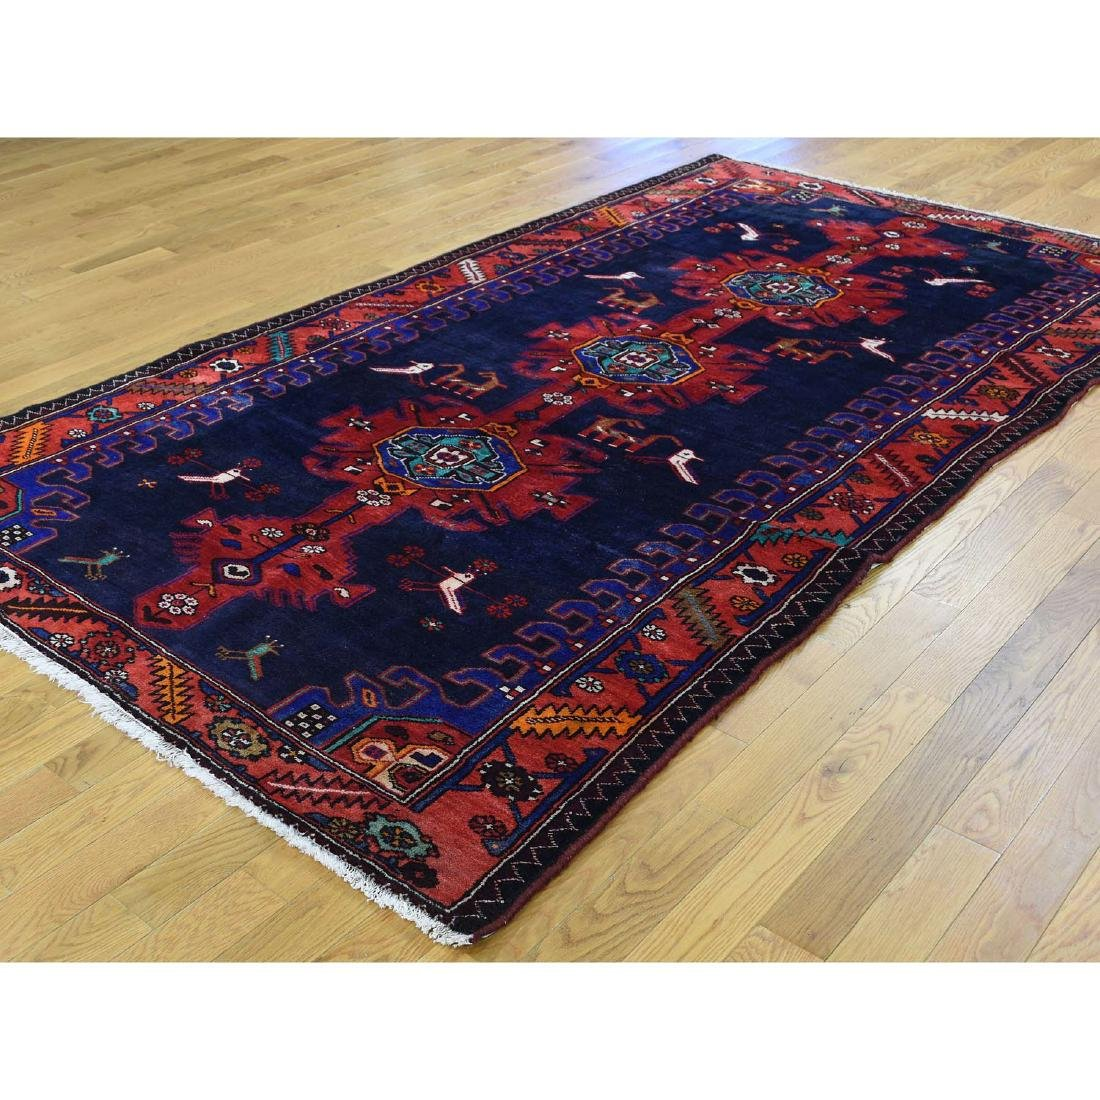 Hand Knotted Semi Antique Persian Hamadan Rug 5.1x9 - 3